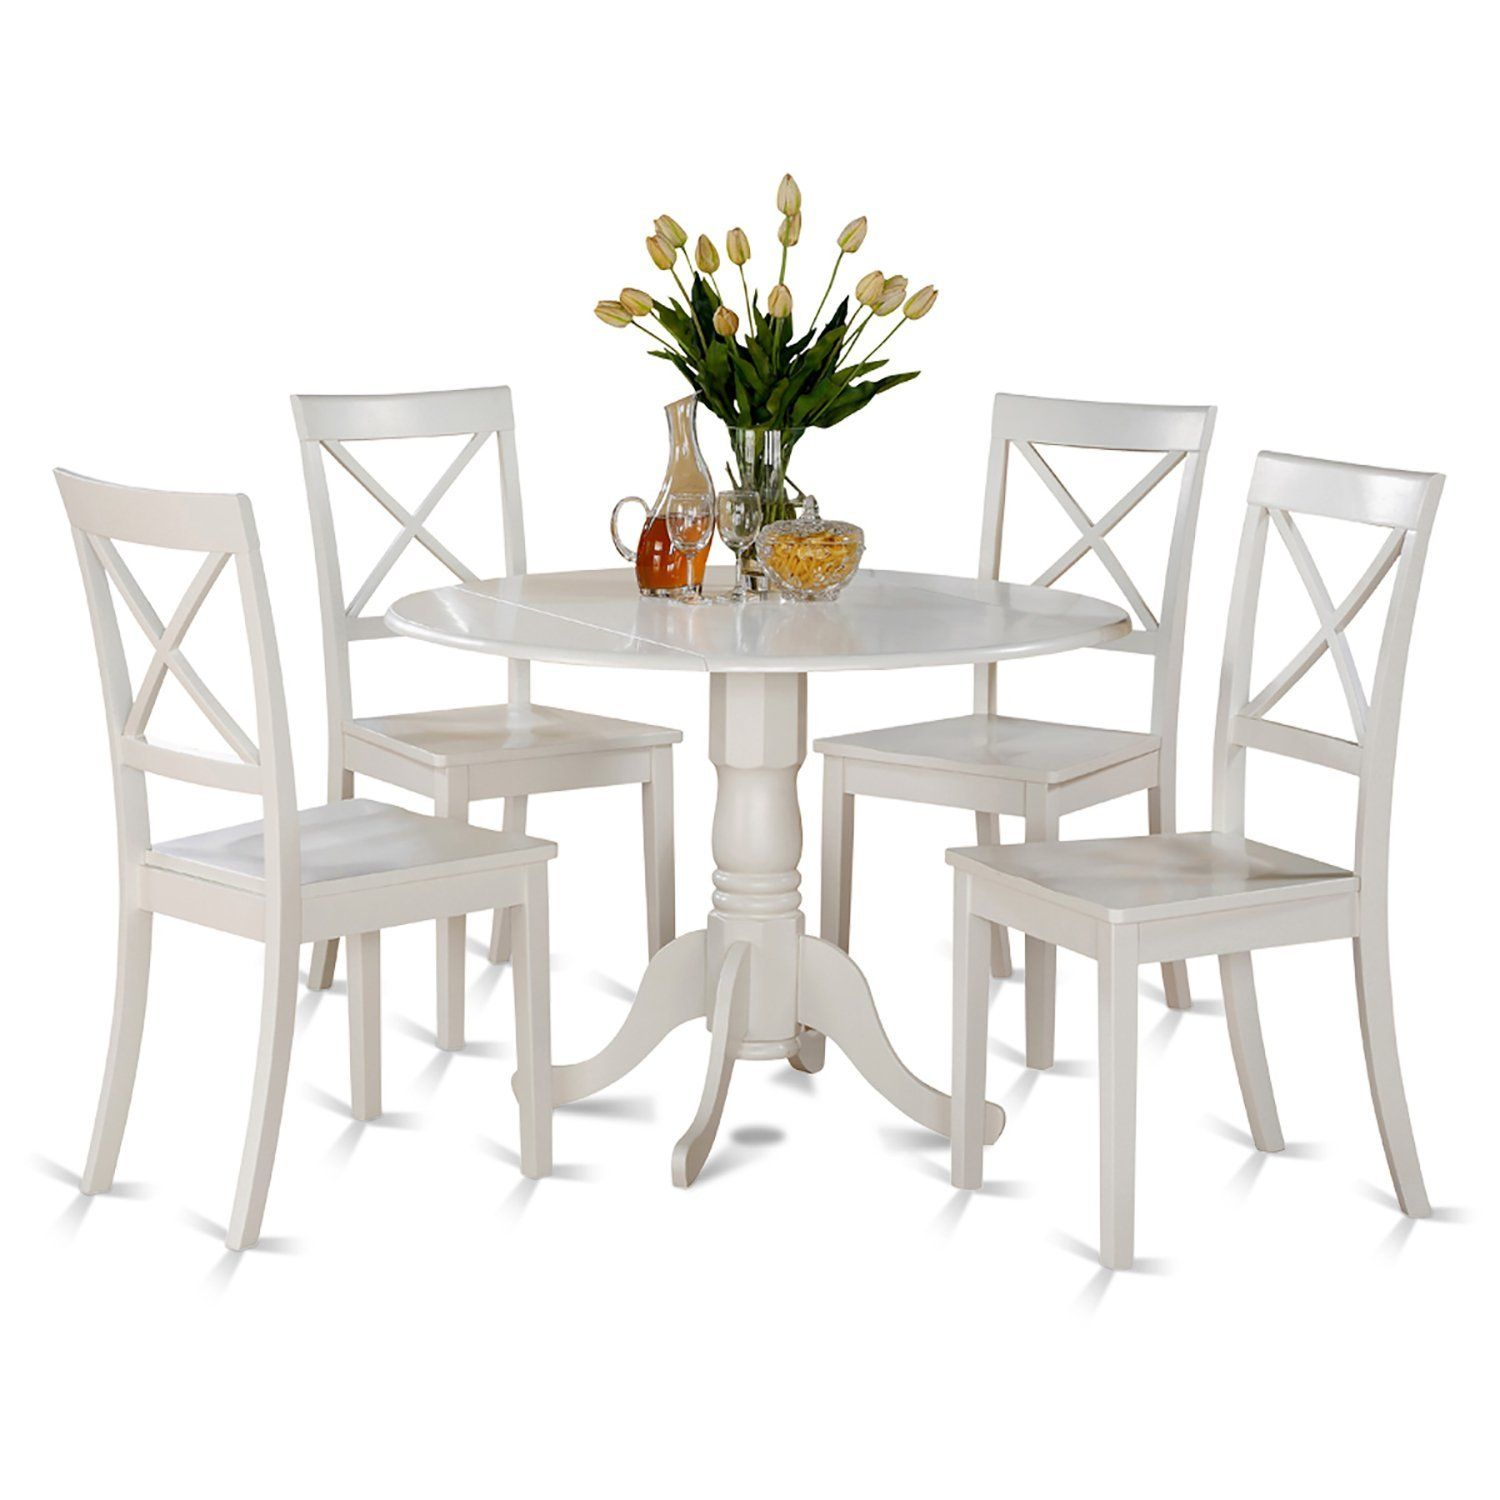 East west furniture dlbowhiw piece kitchen table set linen